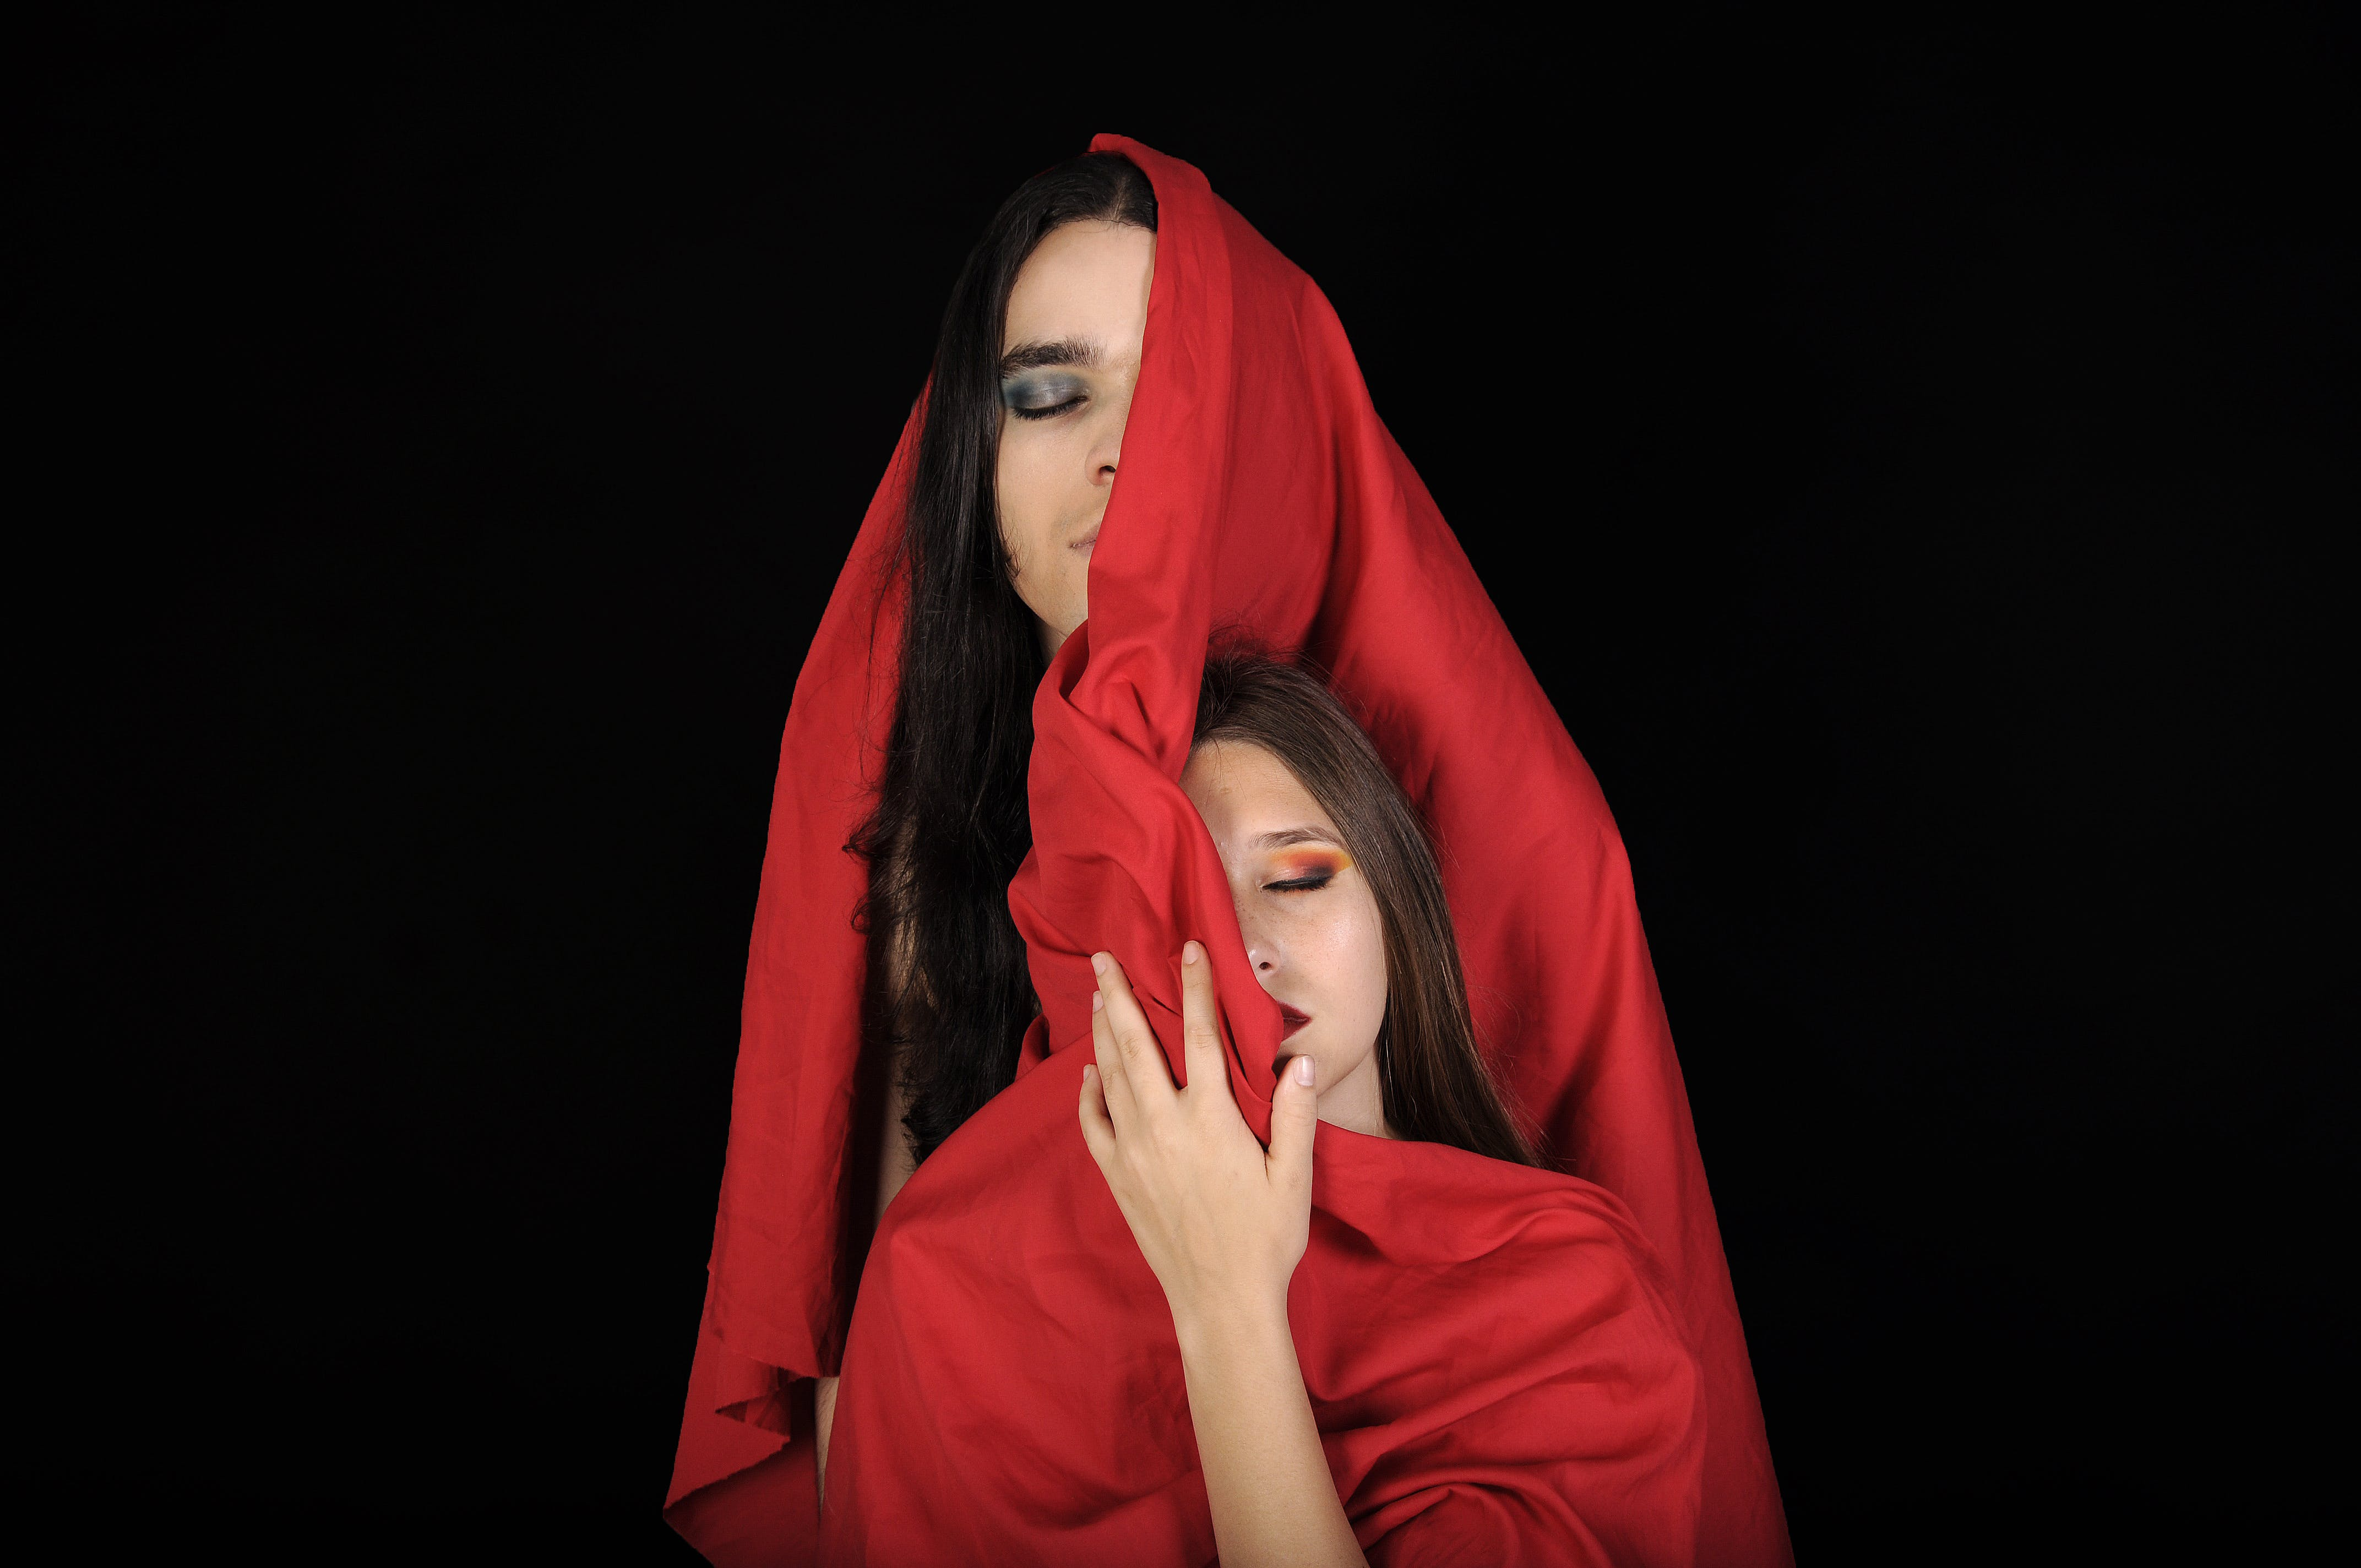 Women With Red Scarf